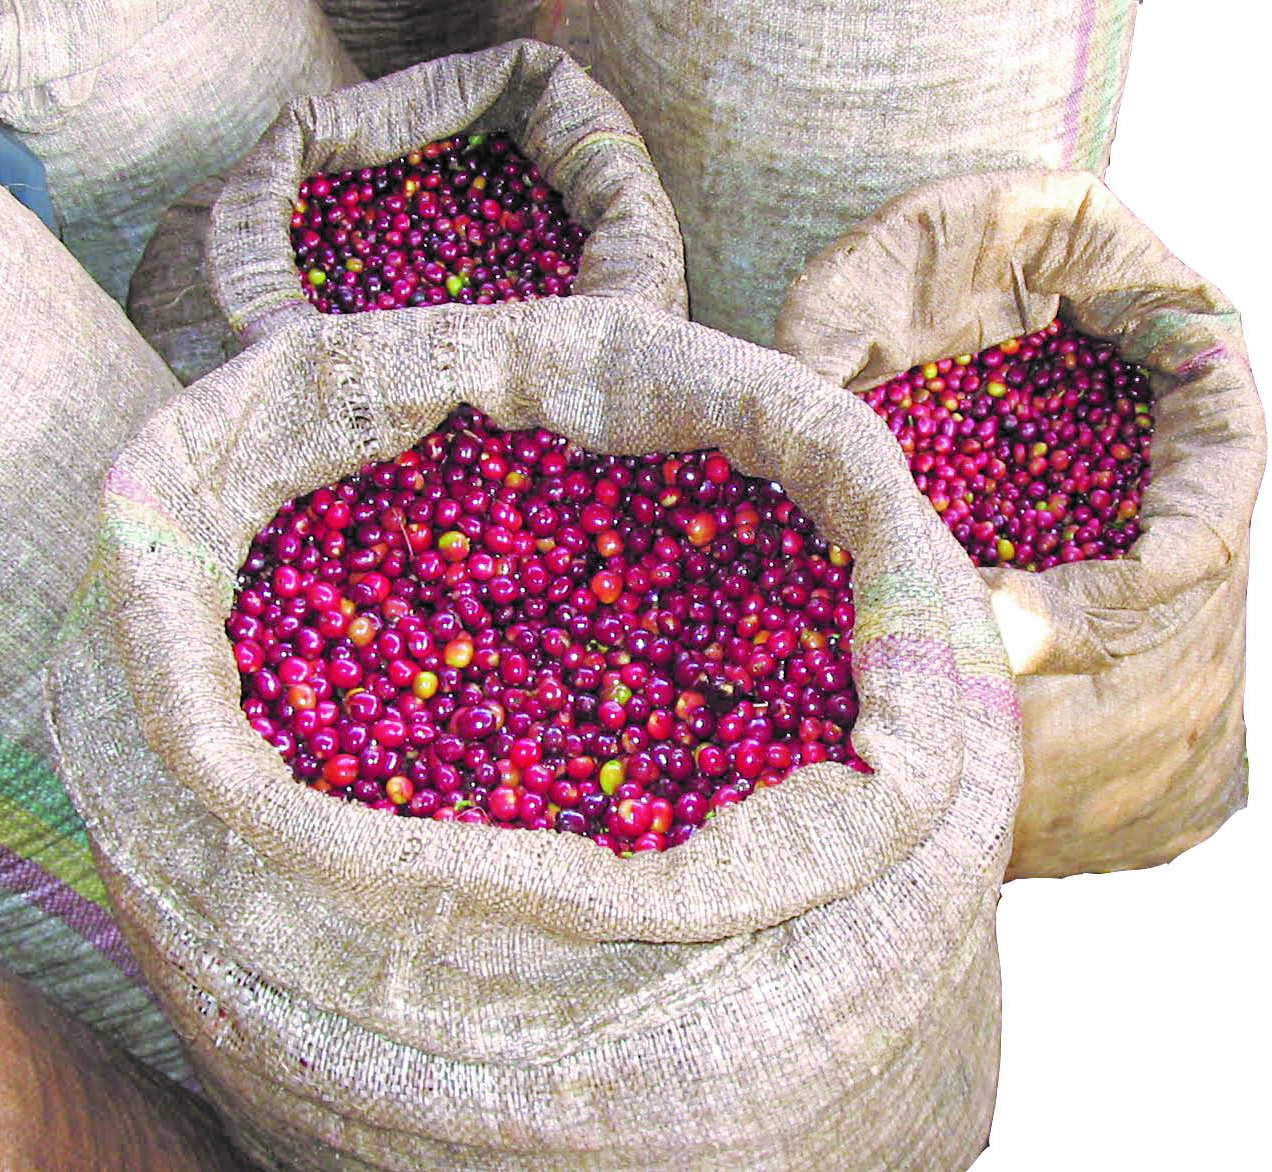 Coffee Prices Rise In July After Three Months Of Decline